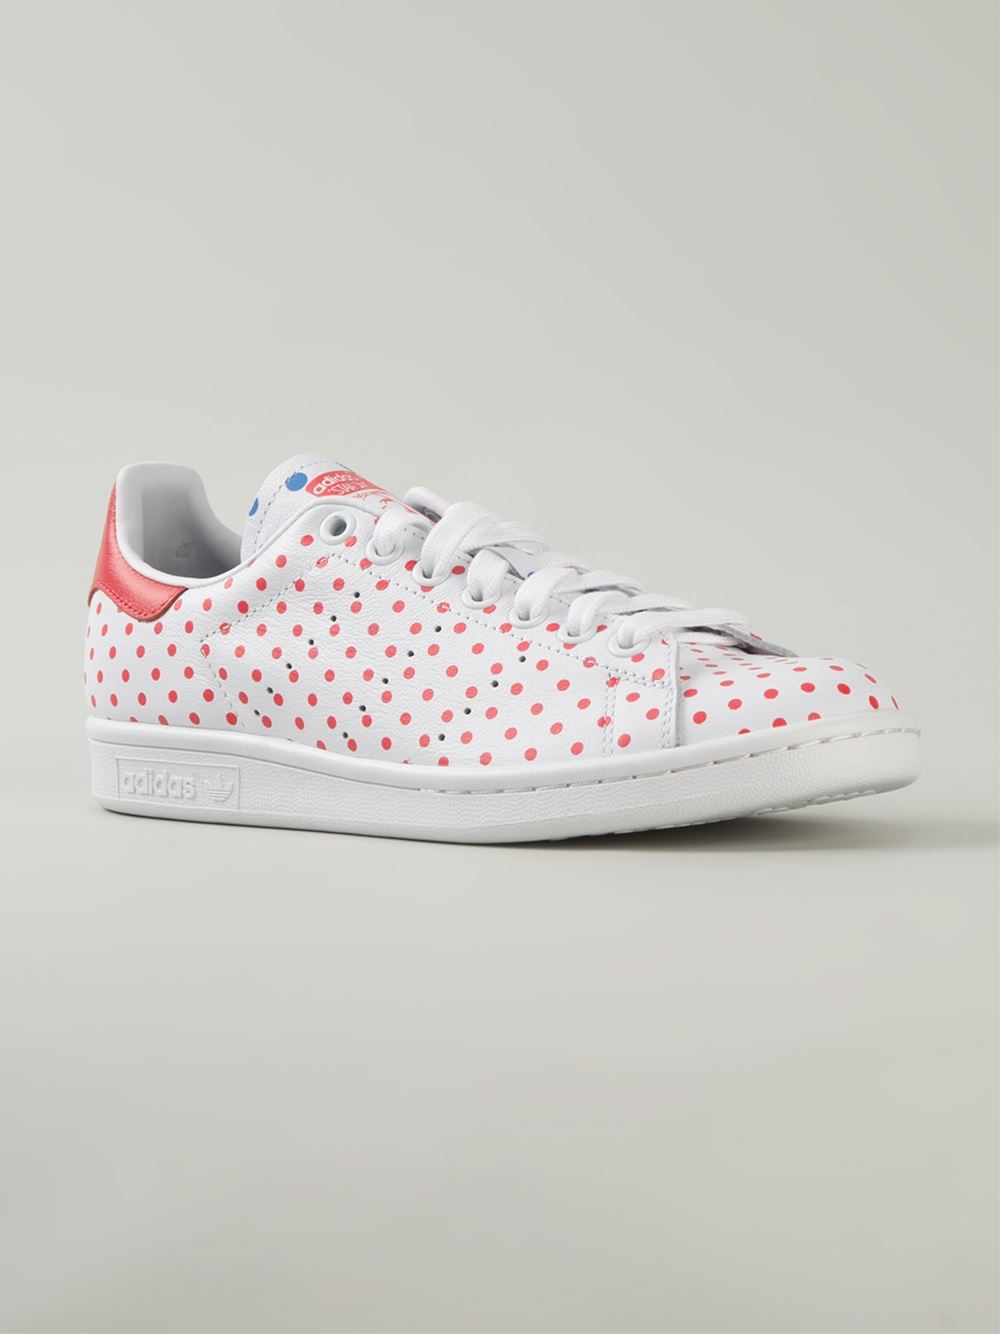 Adidas Stan Smith Polka Dot Sneakers in Red